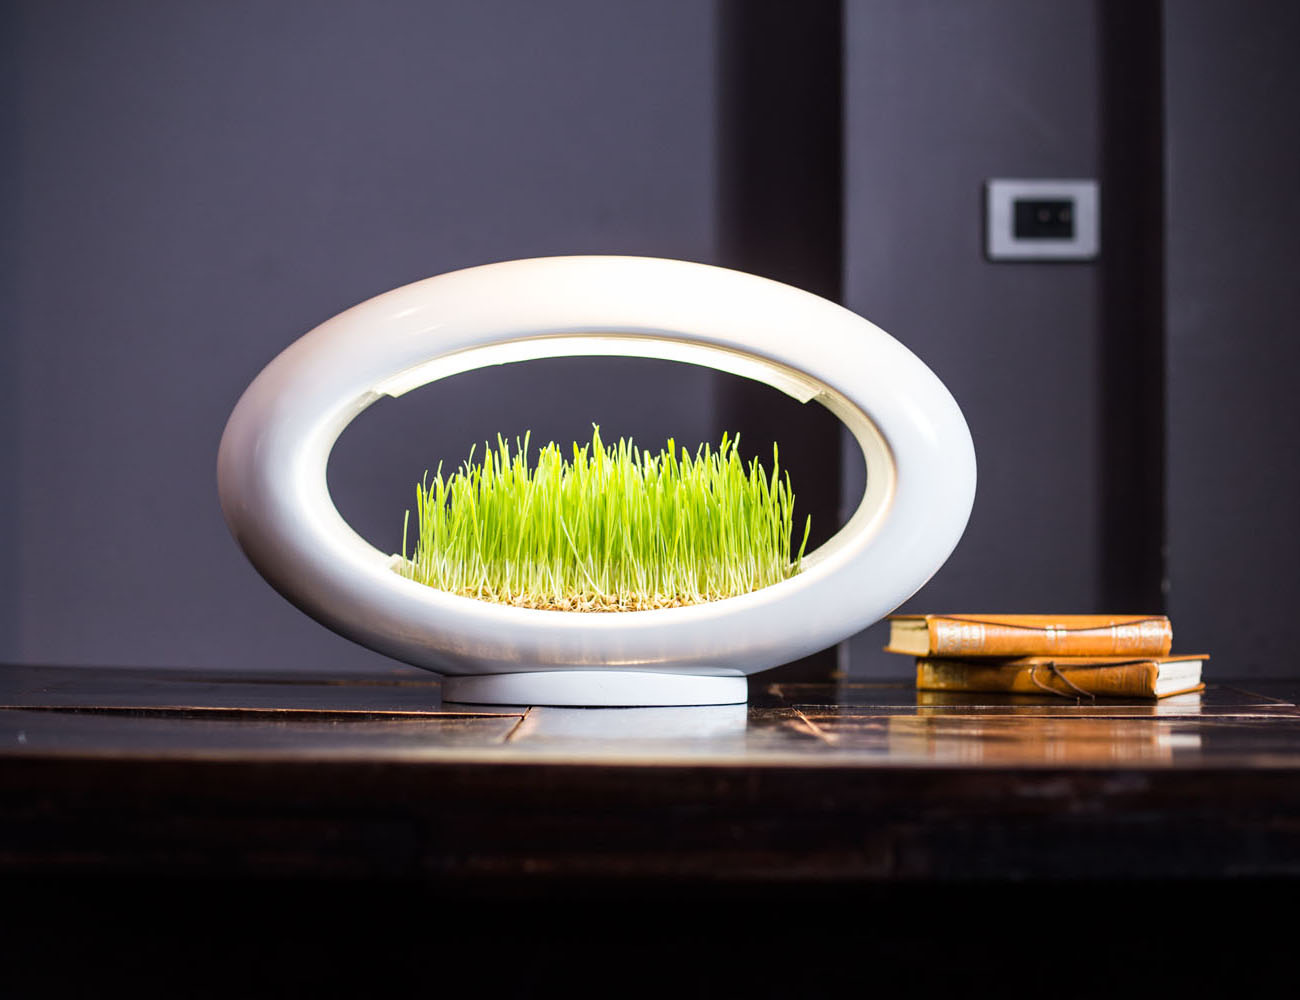 Grasslamp – The Desktop Garden and Light